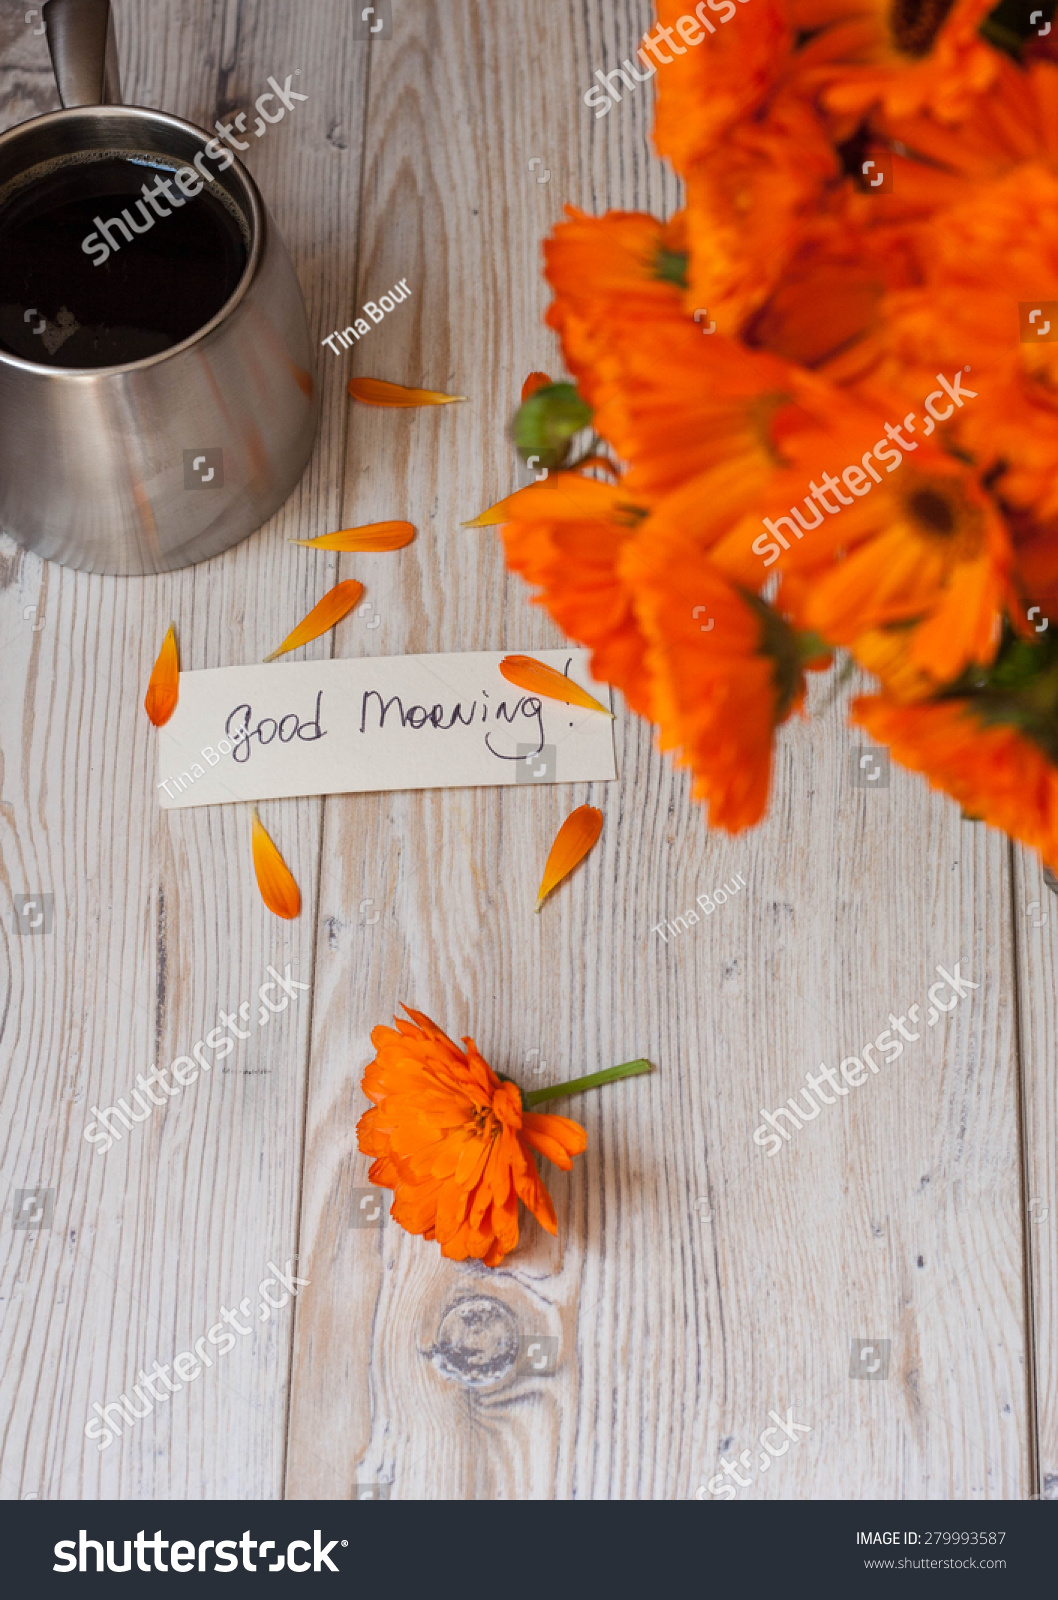 Good Morning Orange Flowers : Royalty free orange flowers with coffee and good